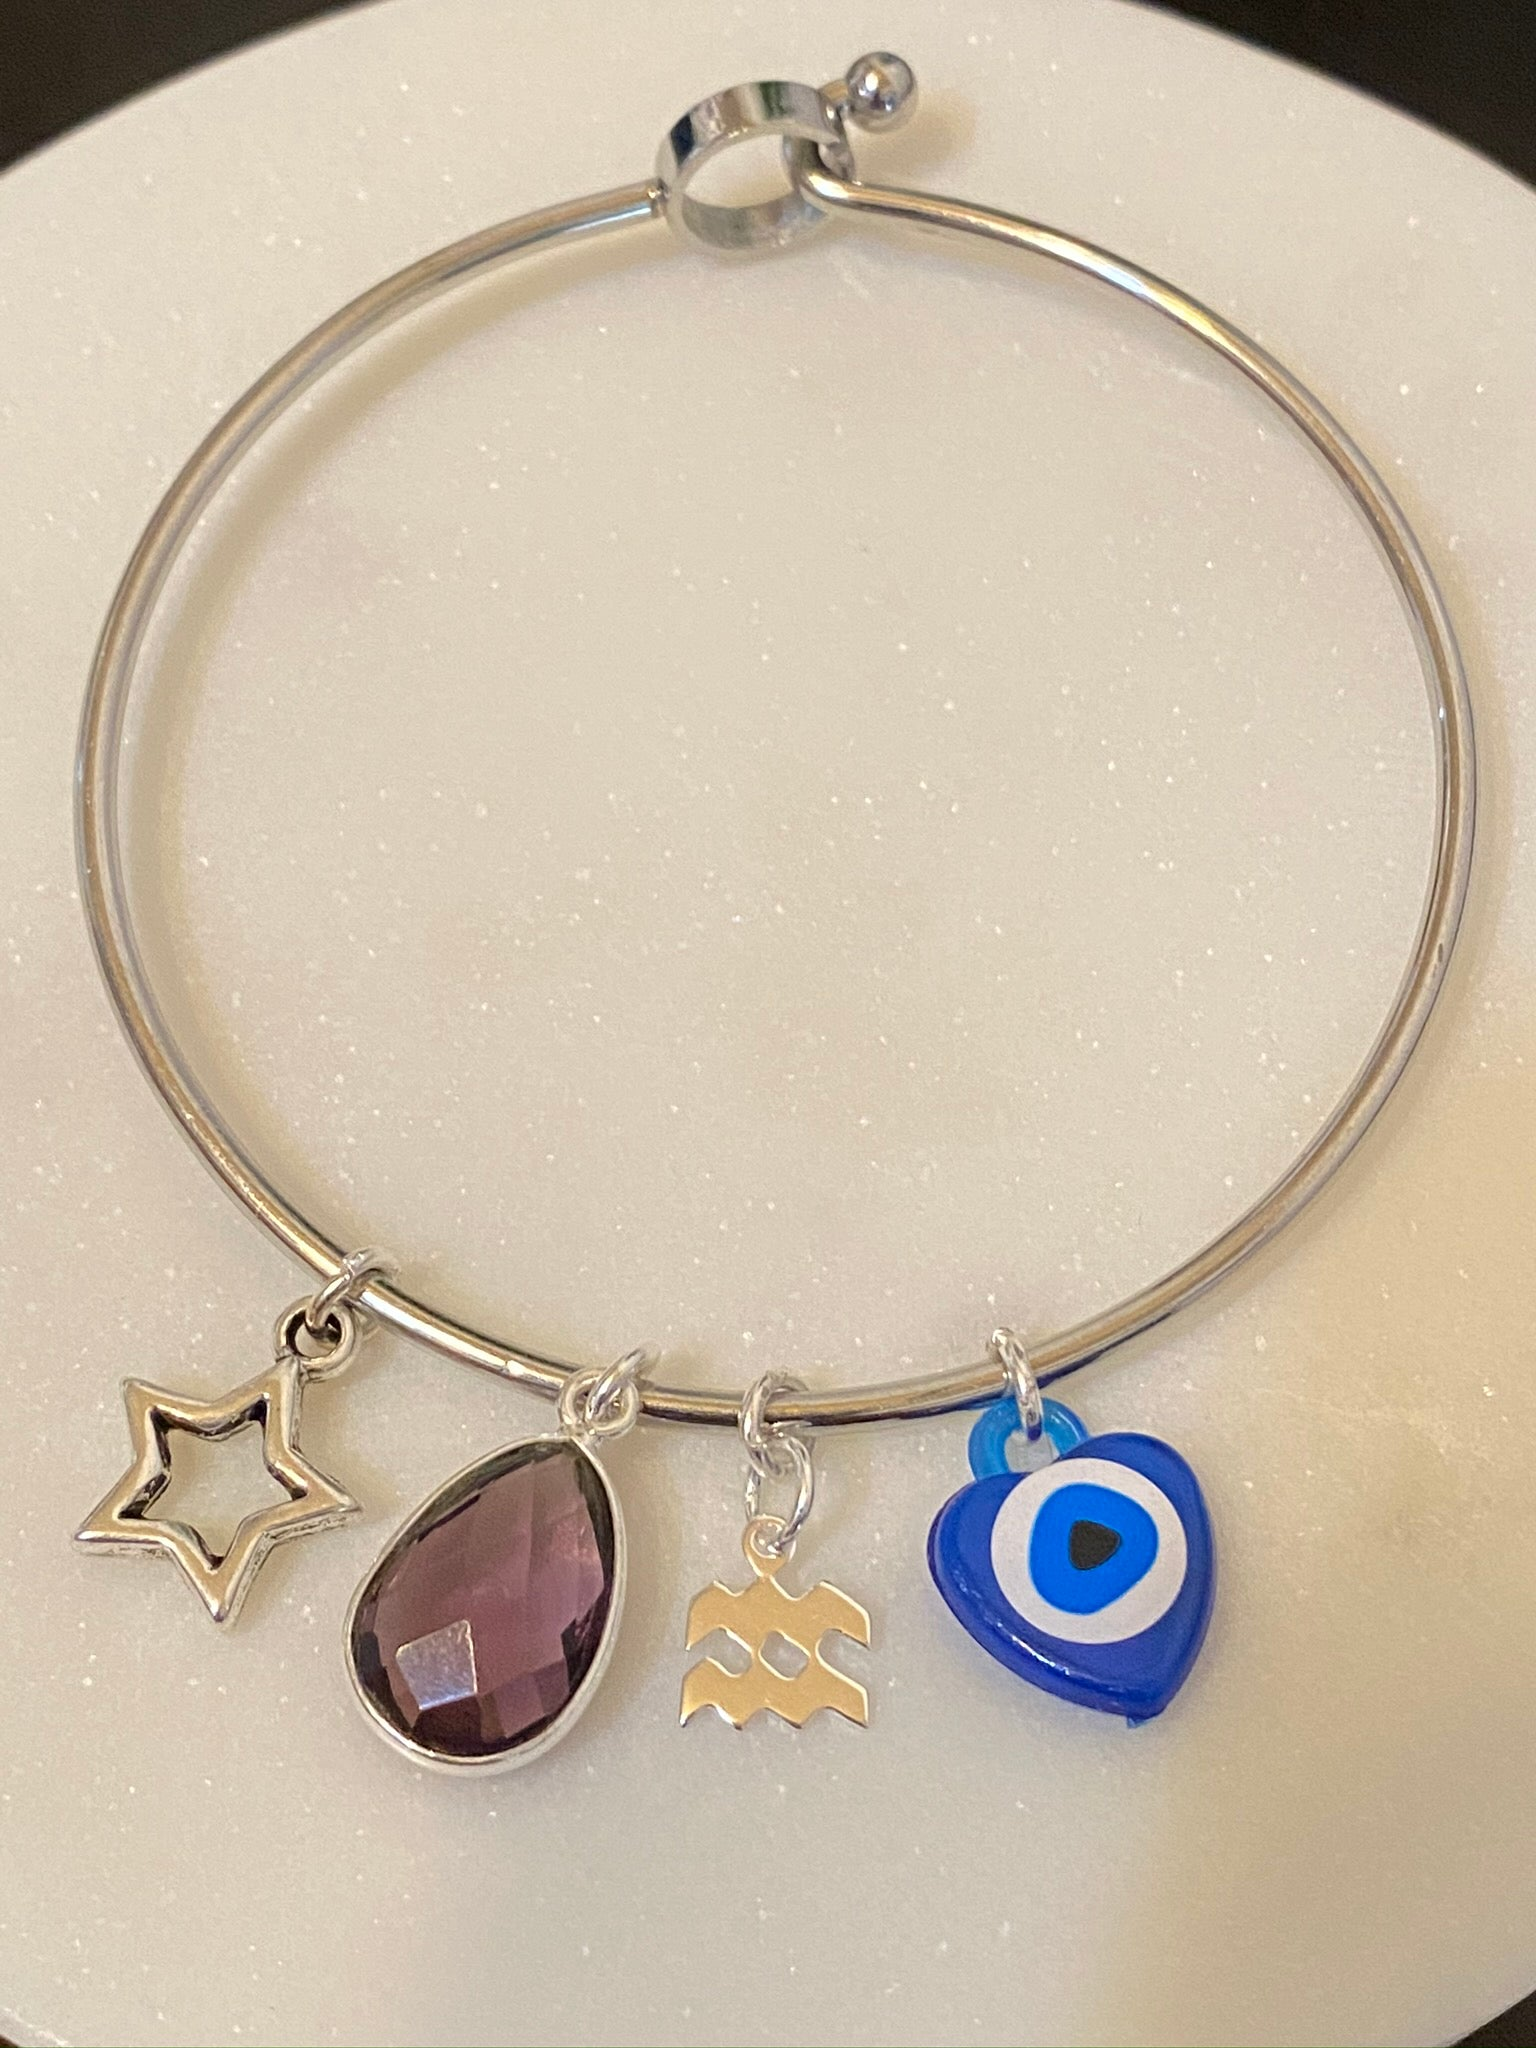 Aquarius Amethyst Bangle Bracelet